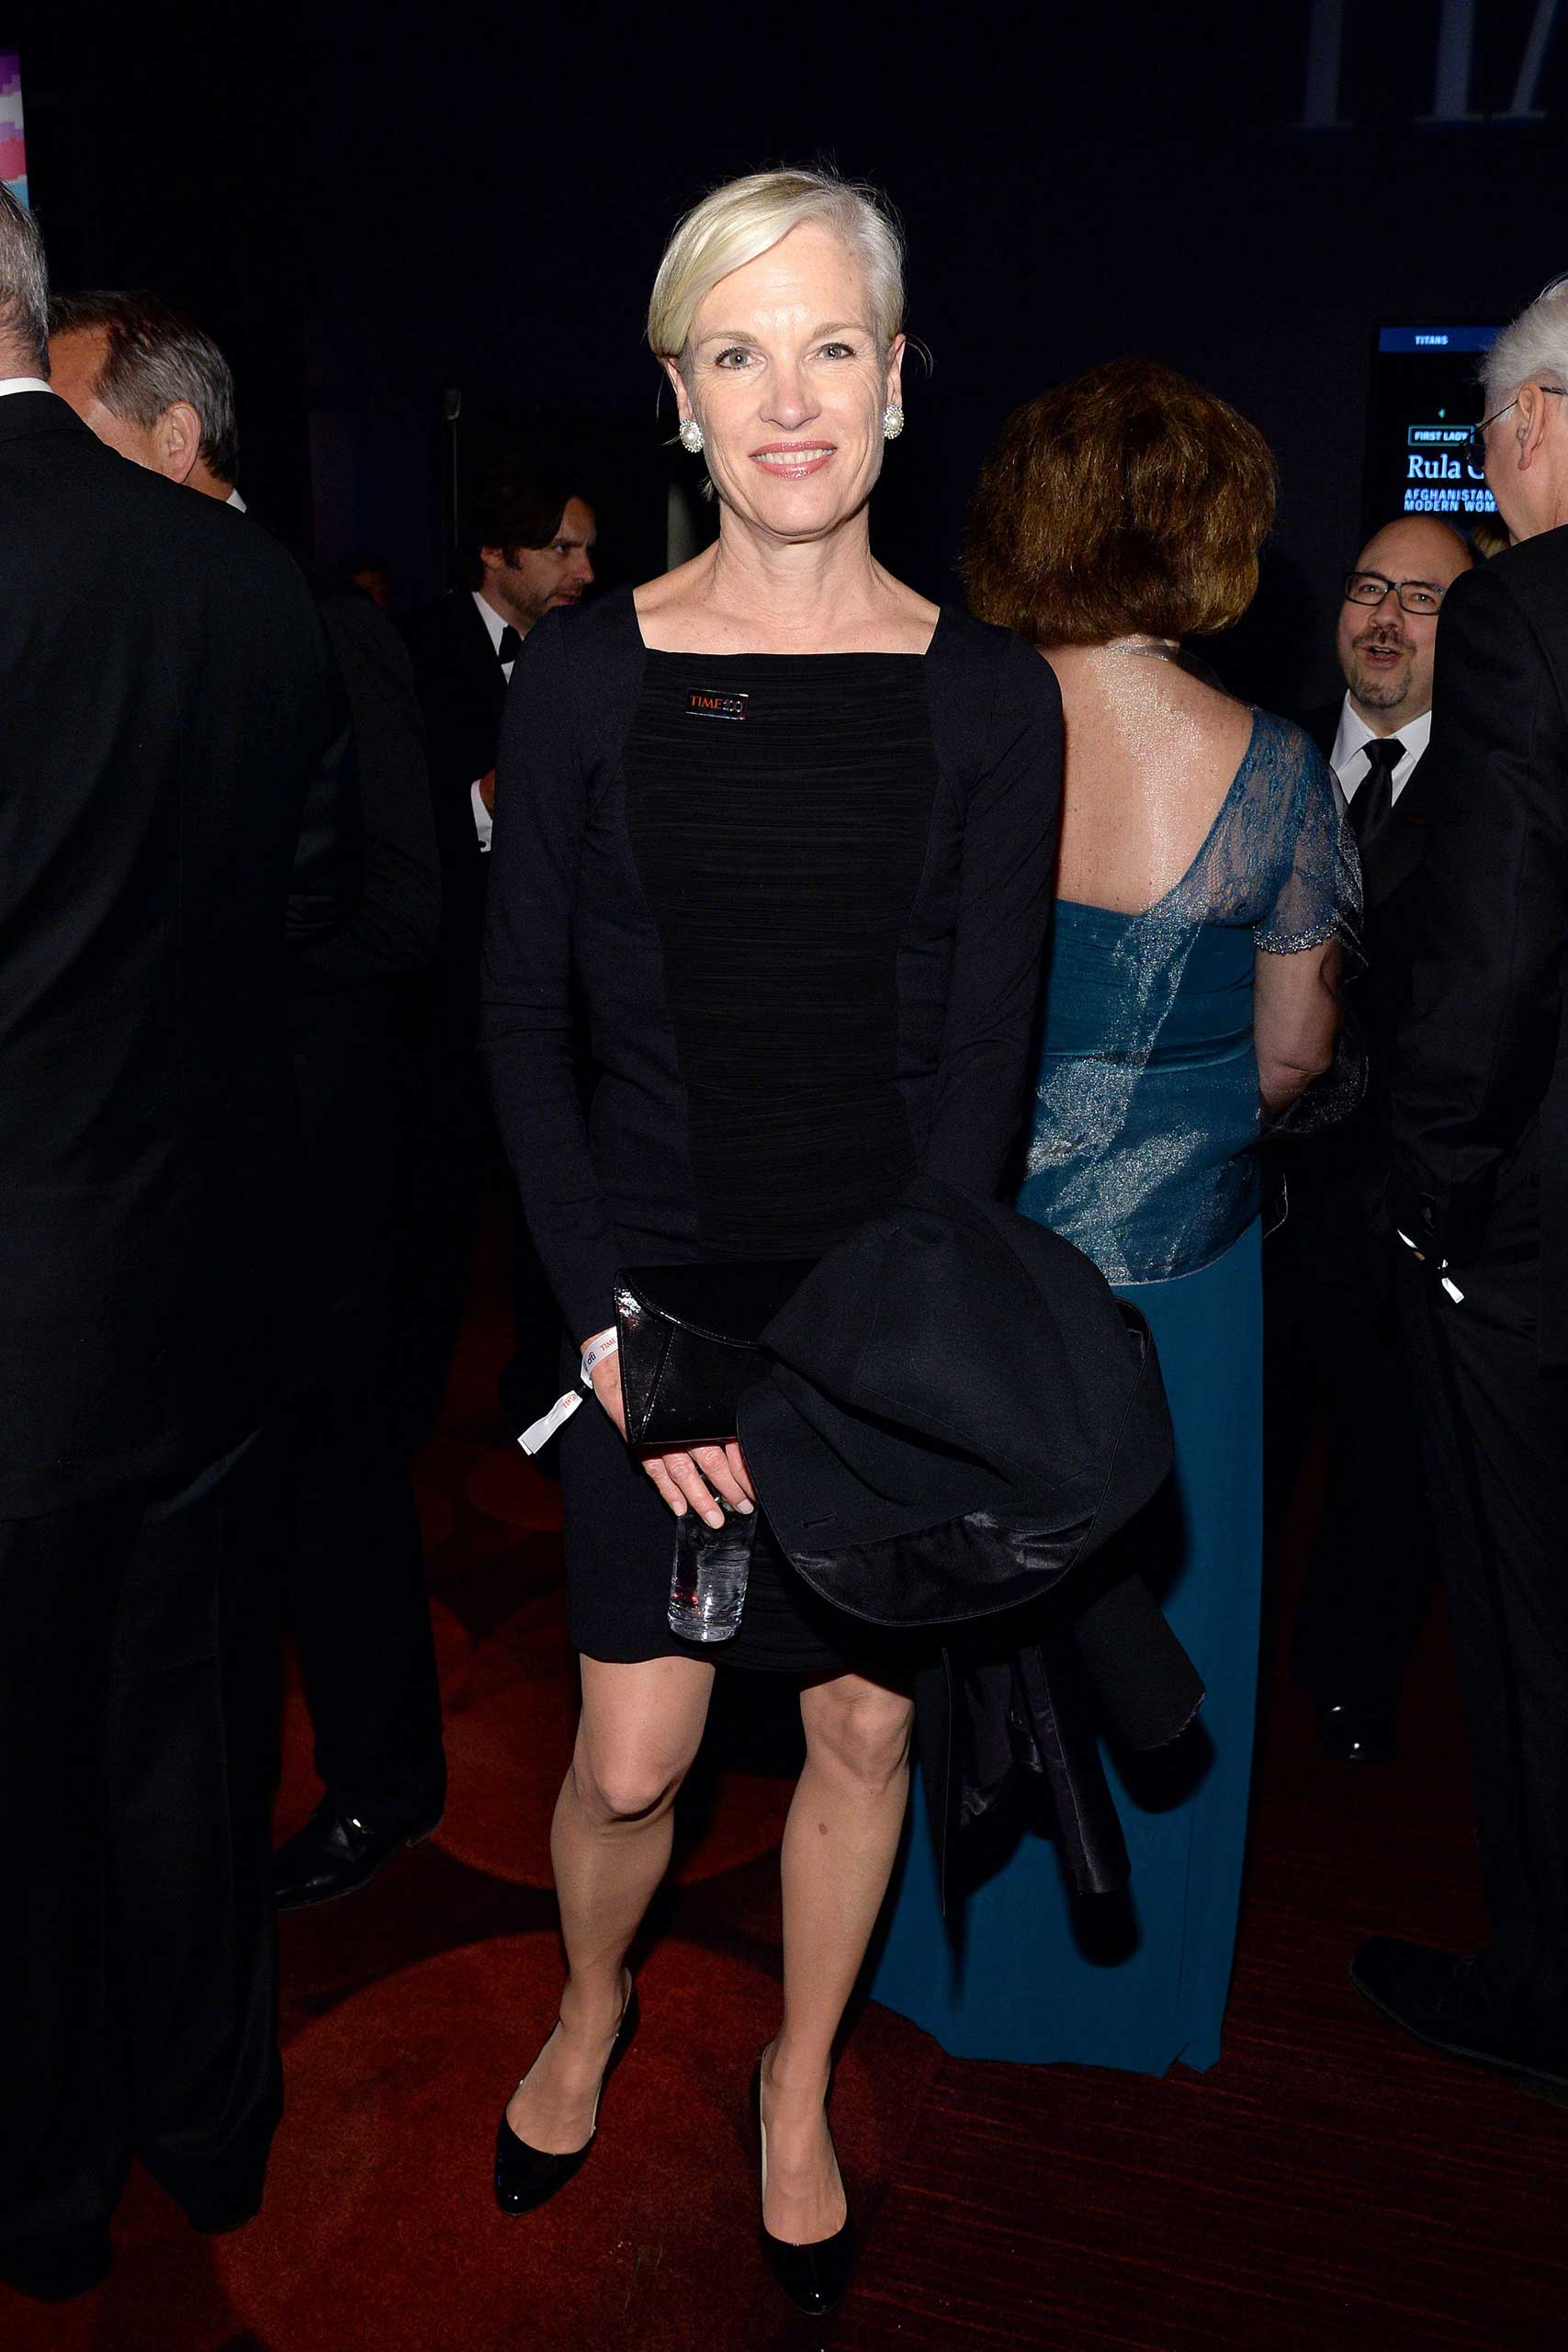 Cecile Richards attends the Time 100 Gala held at Jazz at Lincoln Center in New York City on April 21, 2015.